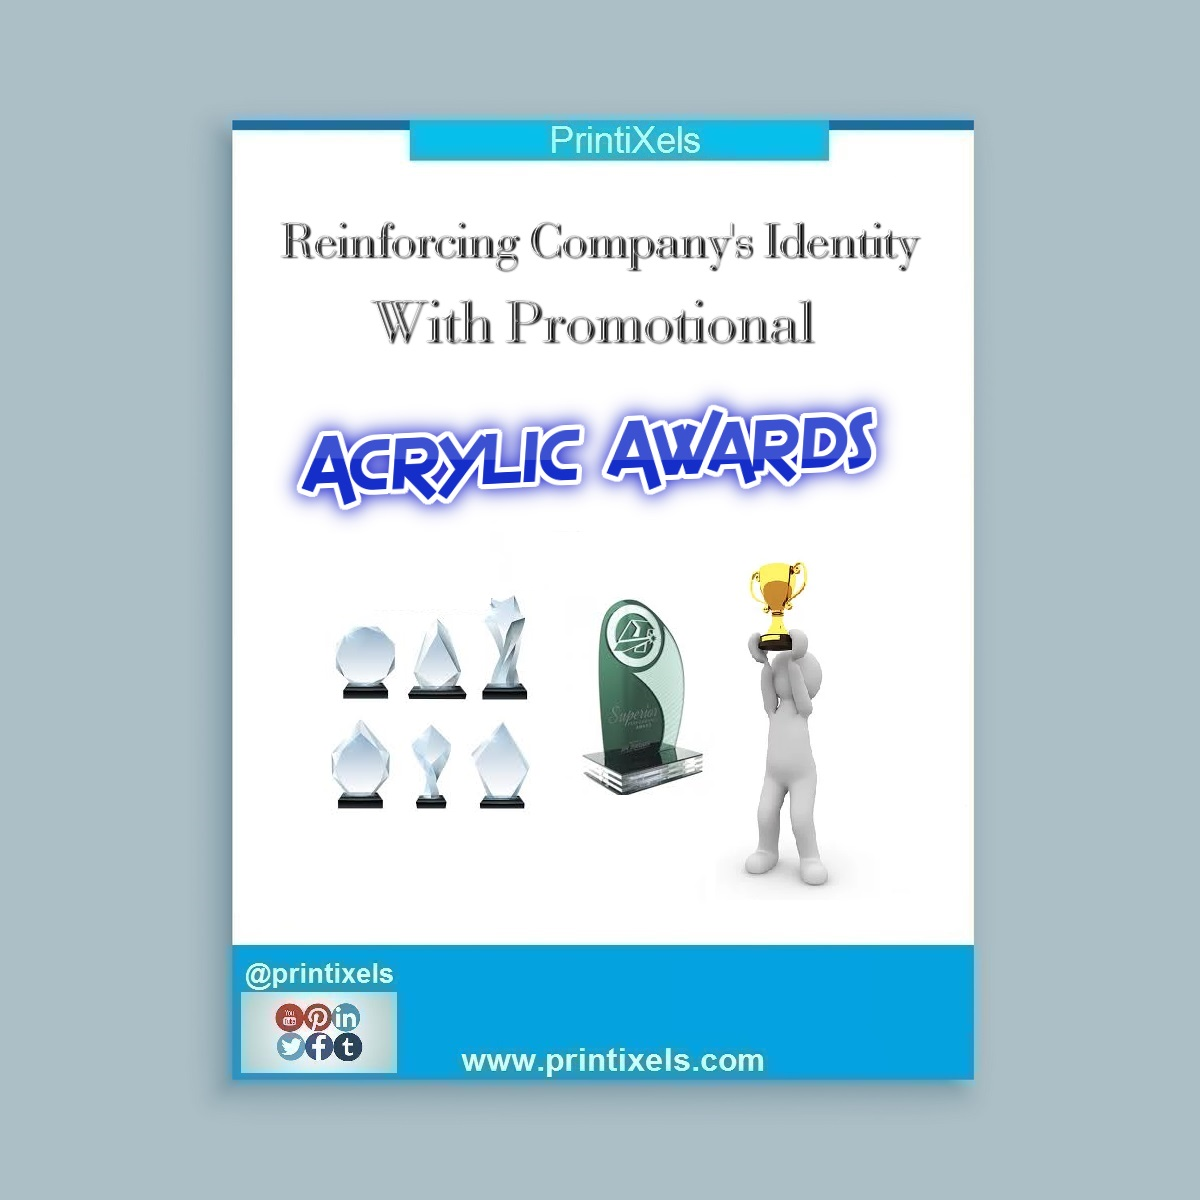 Reinforcing Company's Identity With Promotional Acrylic Awards